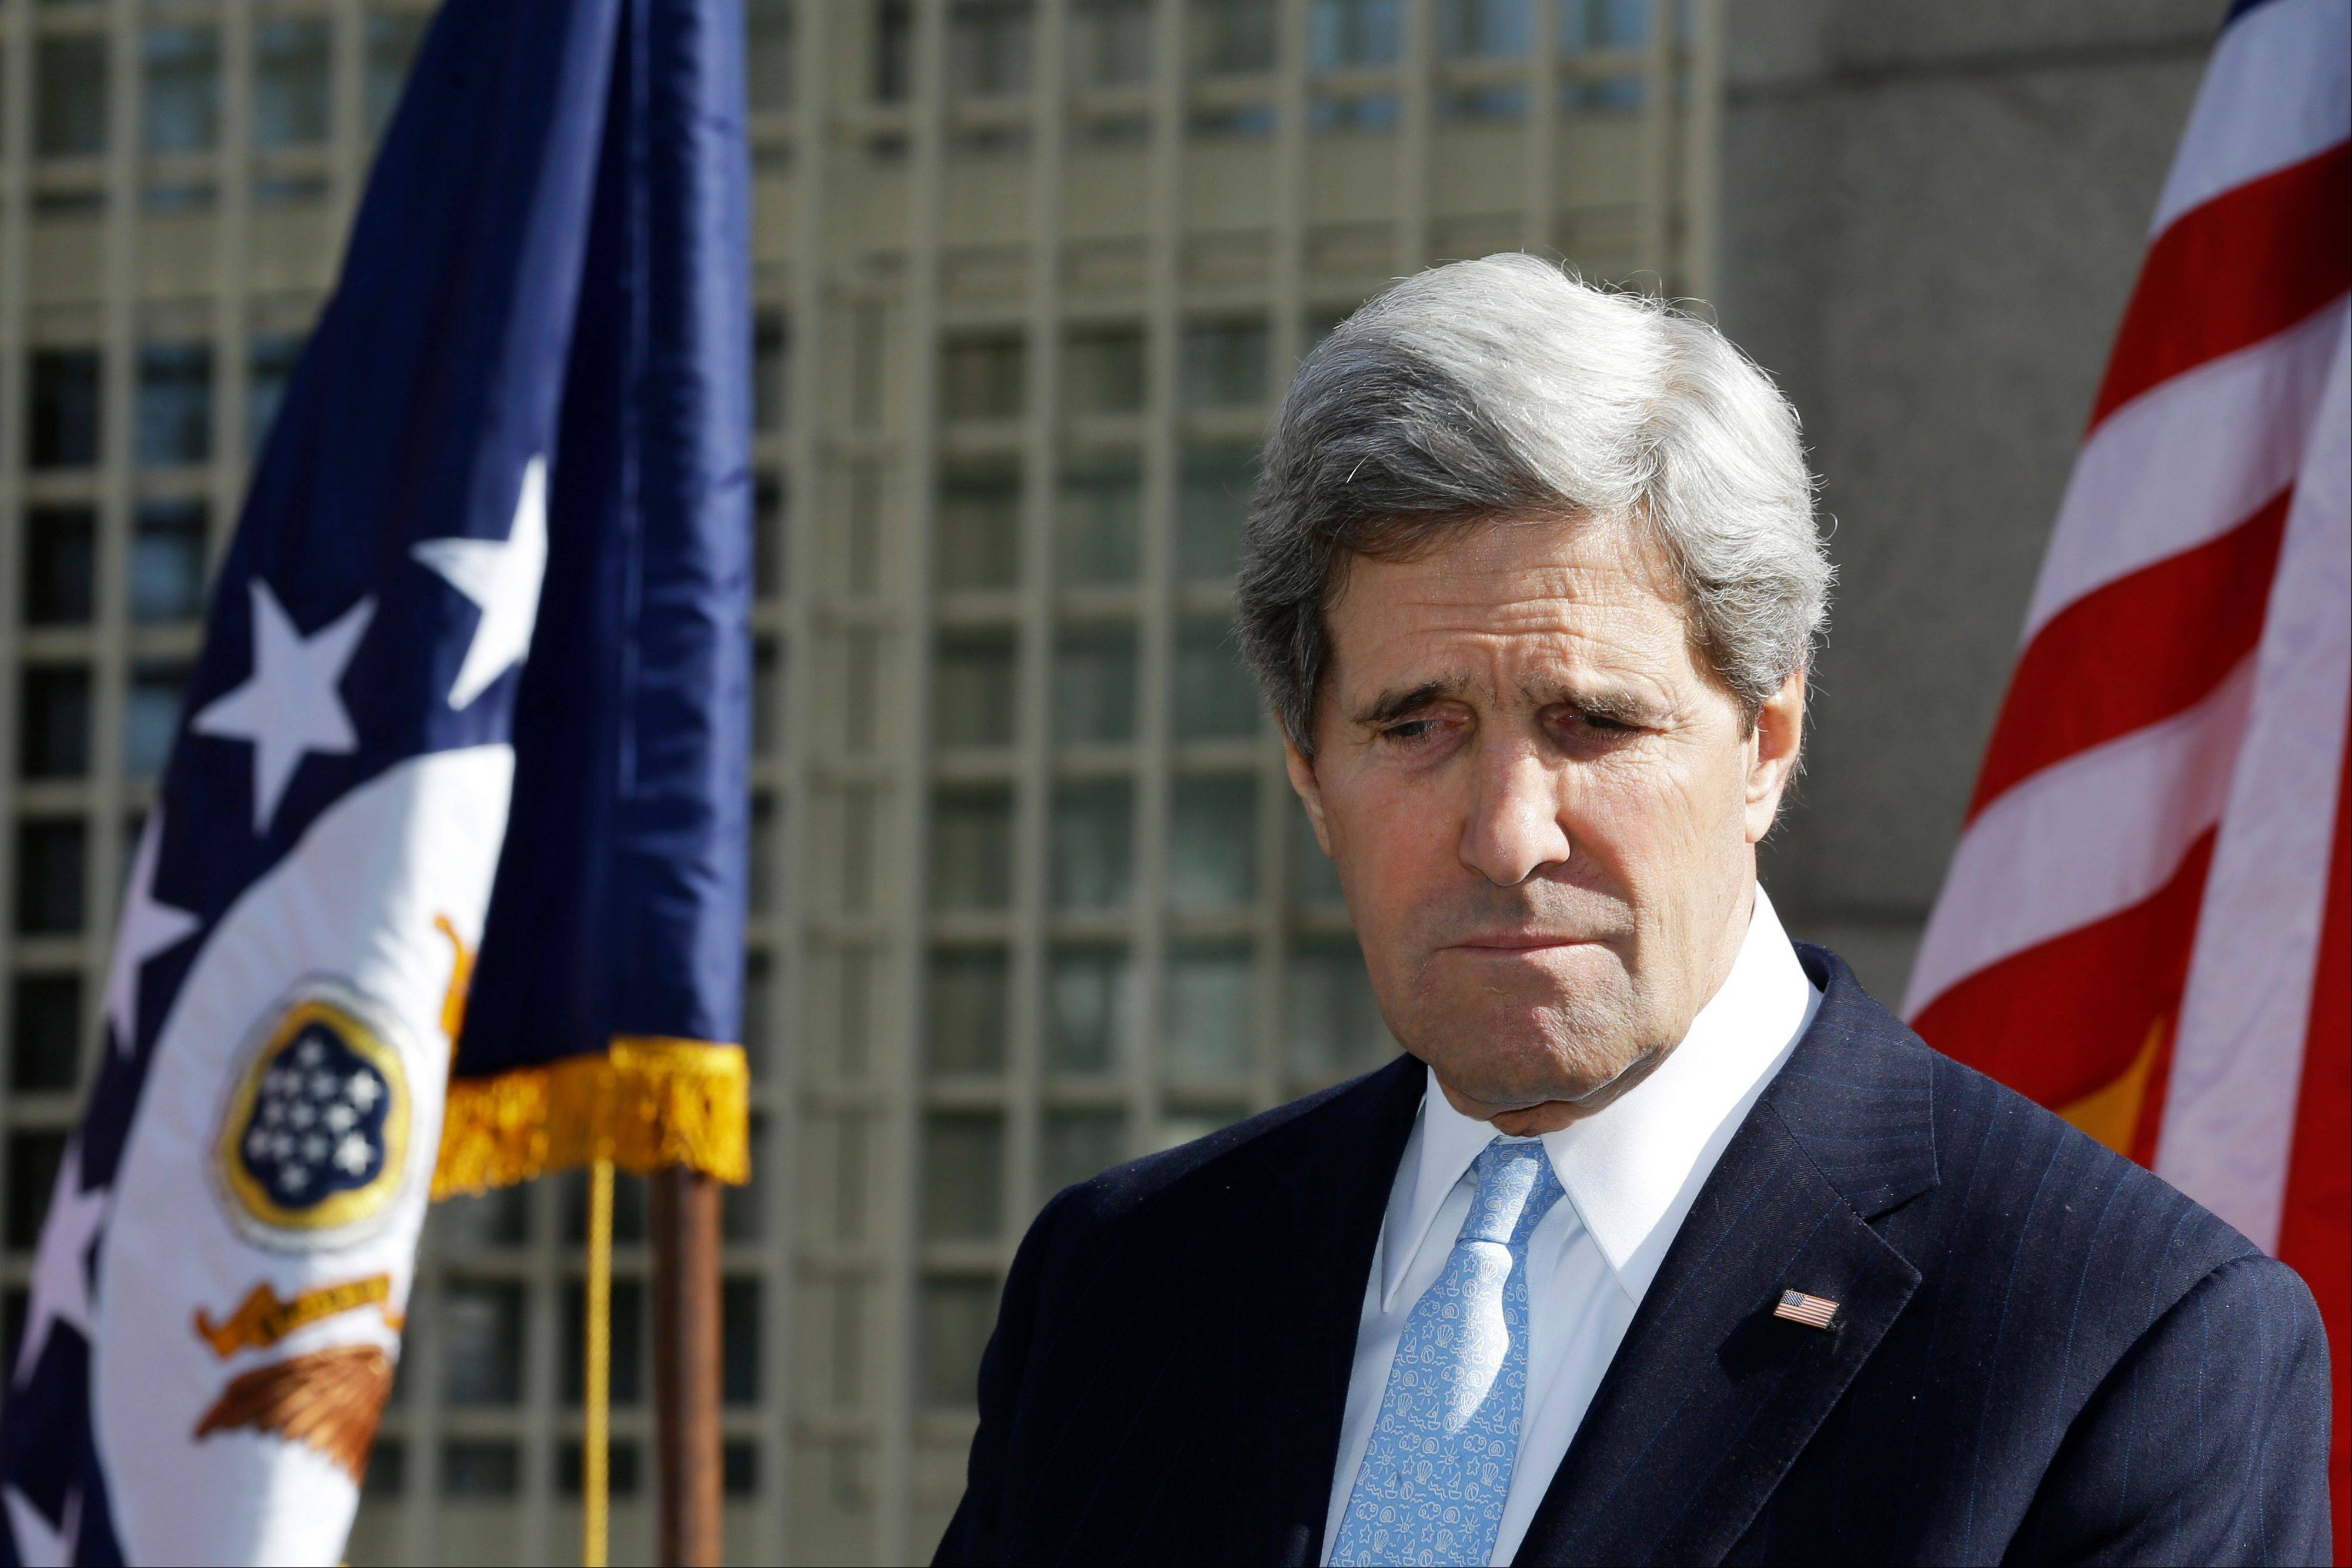 U.S. Secretary of State John Kerry pauses while speaking about the death of Mustafa Akarsu, a U.S. Embassy guard who was killed on Kerry�s first day as secretary by a suicide bomber attack at the U.S. Embassy in Ankara, Turkey, during a memorial at the embassy on Friday, March 1, 2013. Ankara is the fifth leg of Kerry�s first official overseas trip, a nine-day dash through Europe and the Middle East.